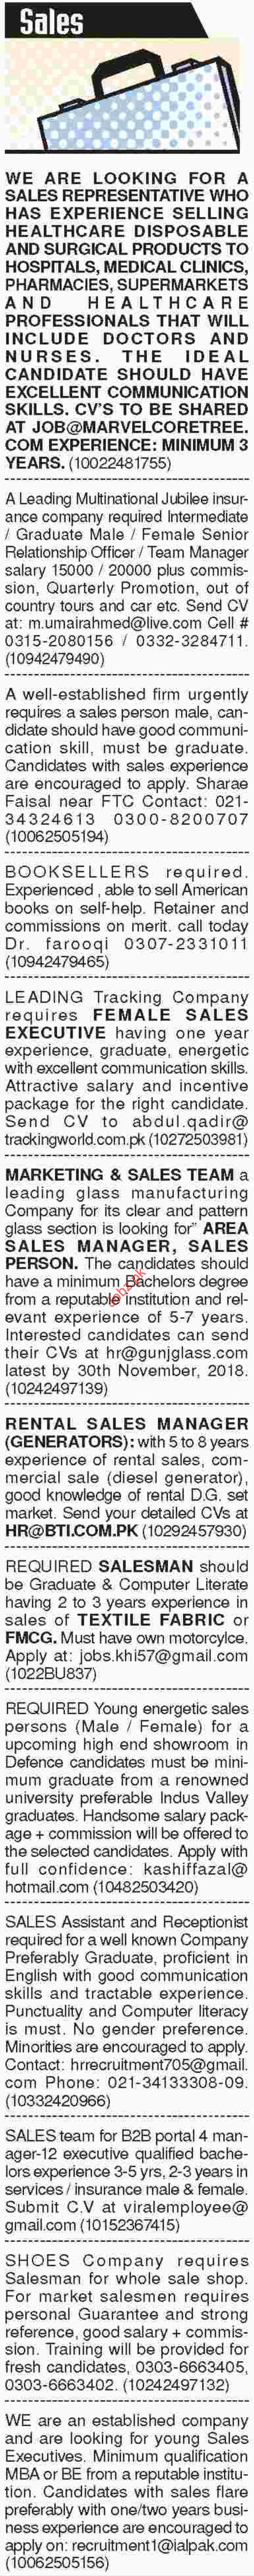 Dawn Sunday Classified Ads for Sales Staff Jobs 2018